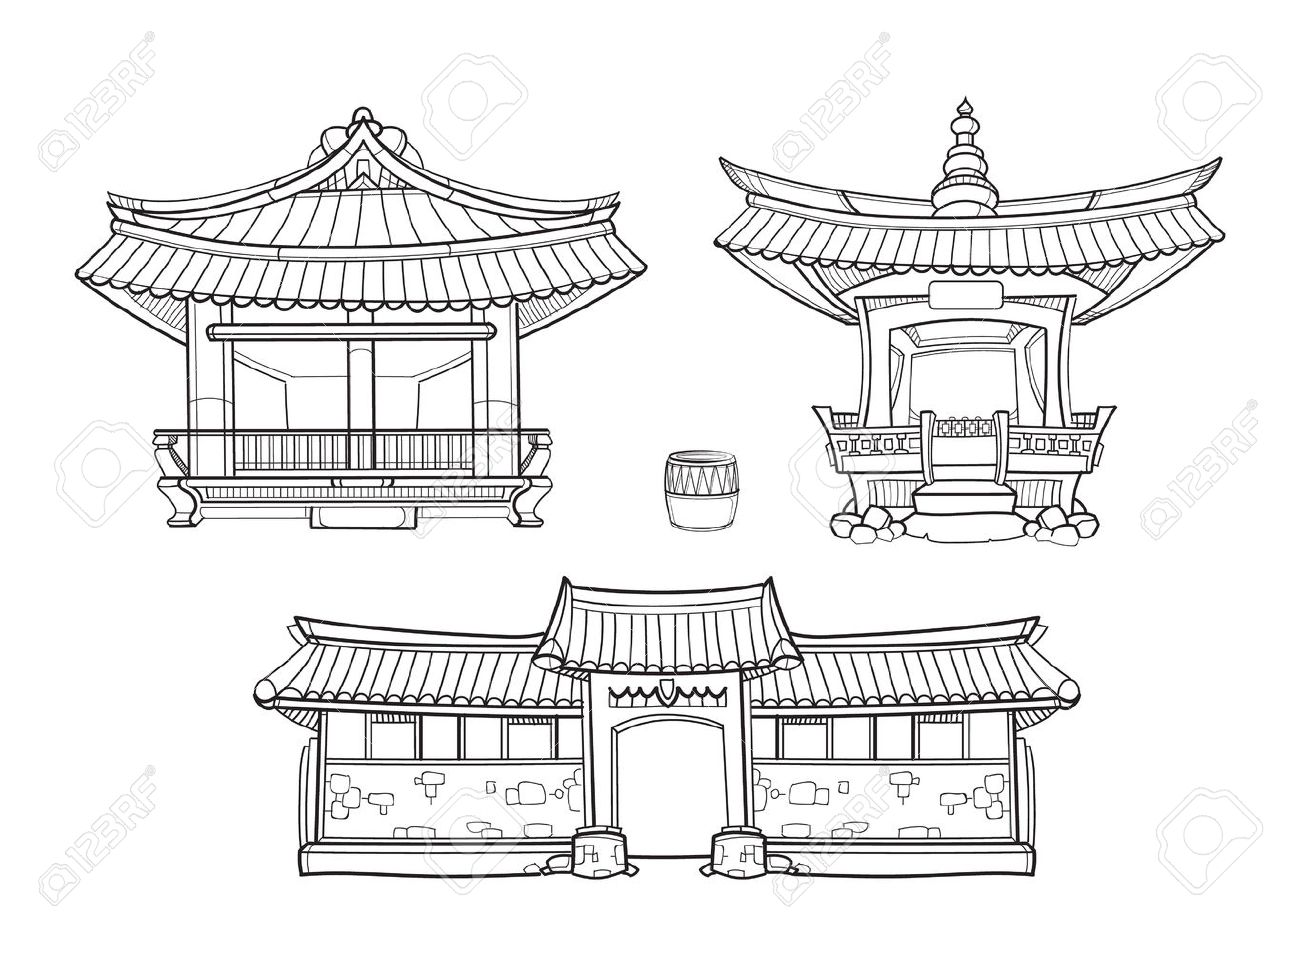 Hanok korean traditional architecture outline set palace house architecture asia village culture asian